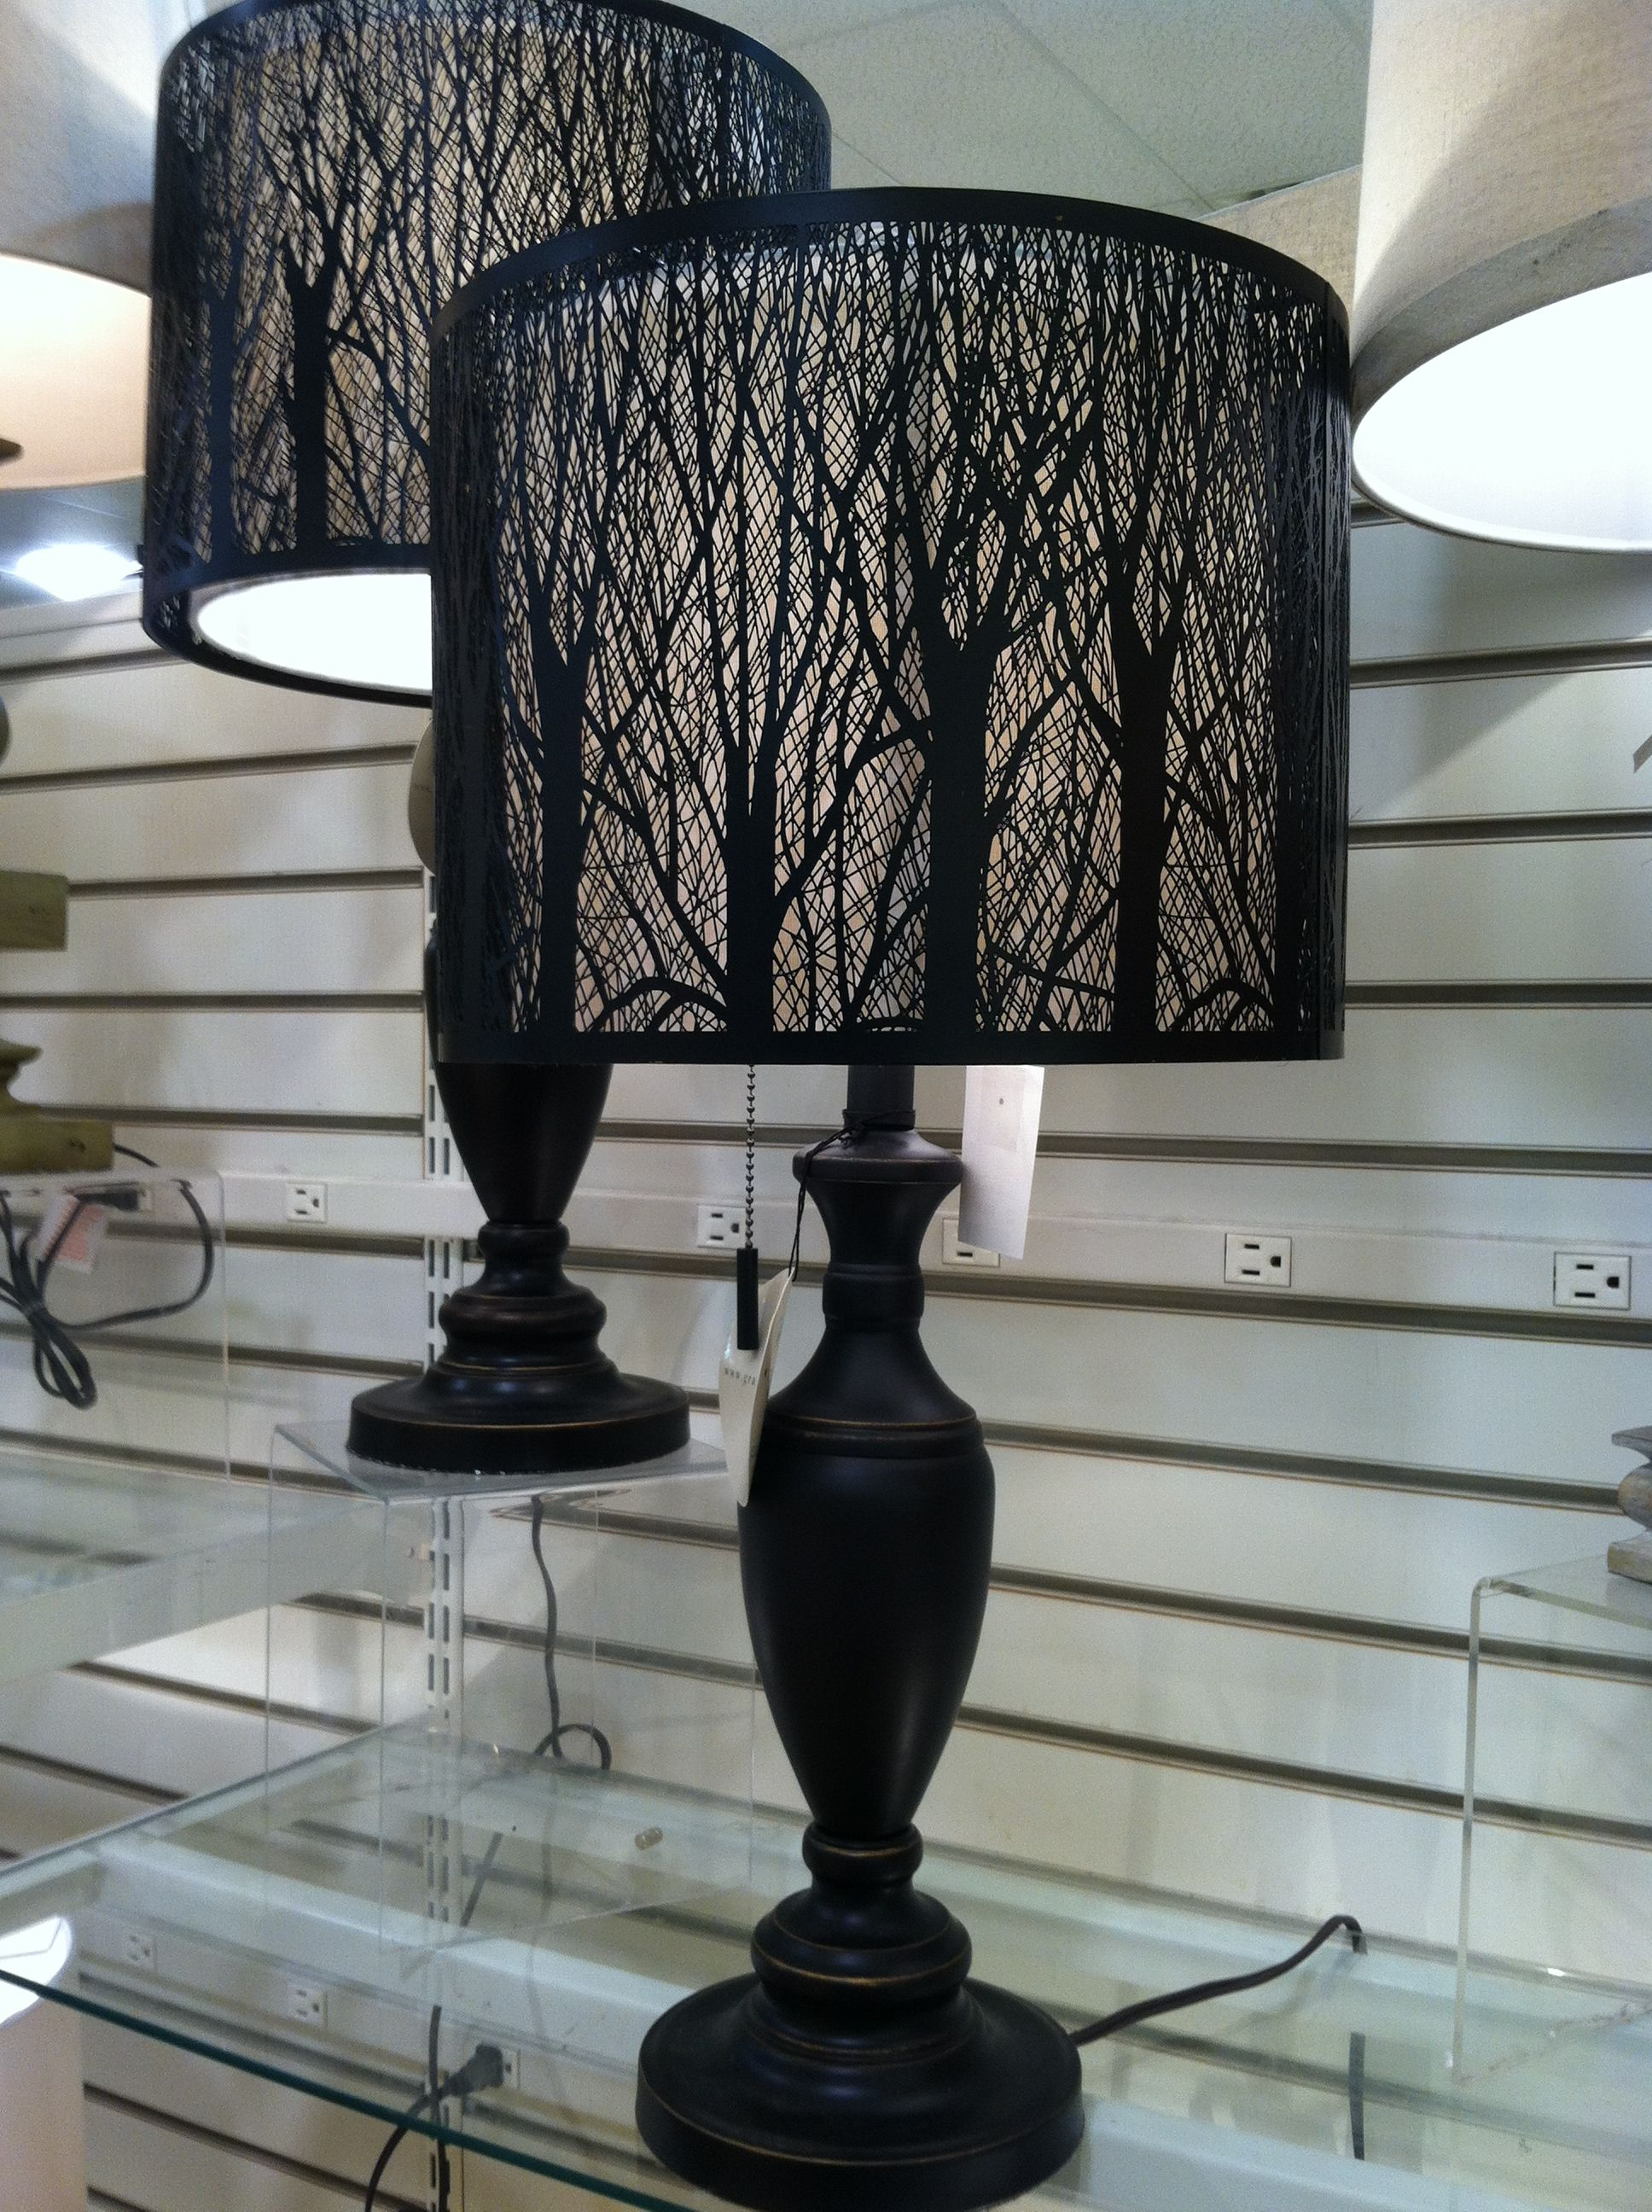 Table Lamp With Quot Tree Branch Quot Cut Outs On Shade Very Cool